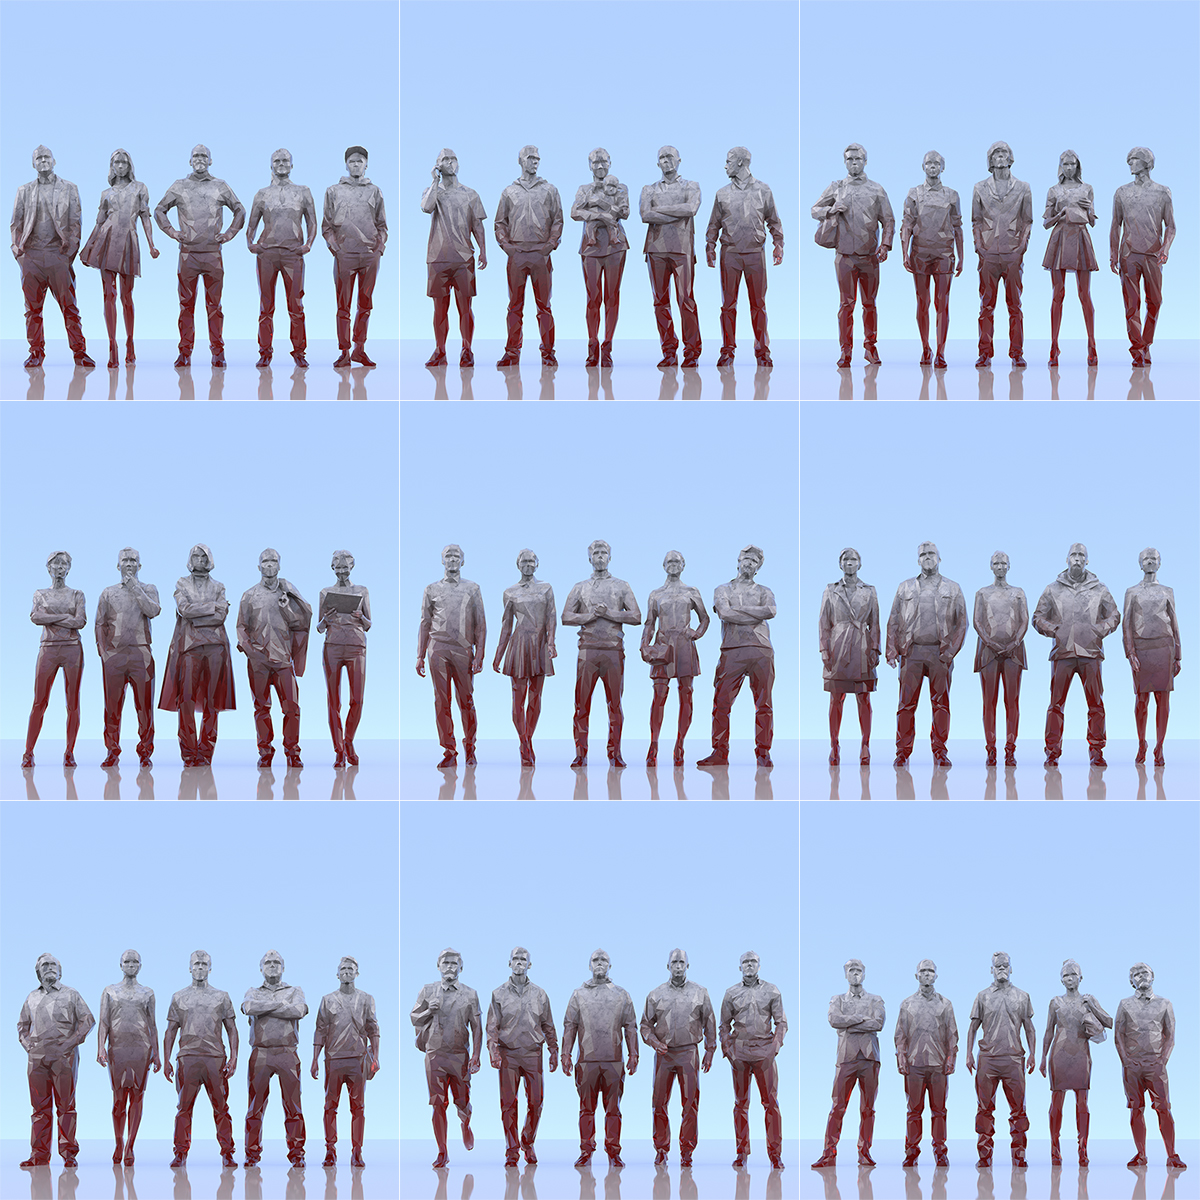 This was HomoSapiens III 000 1 - 2019 - This was HomoSapiens. III. (LowPoly People)